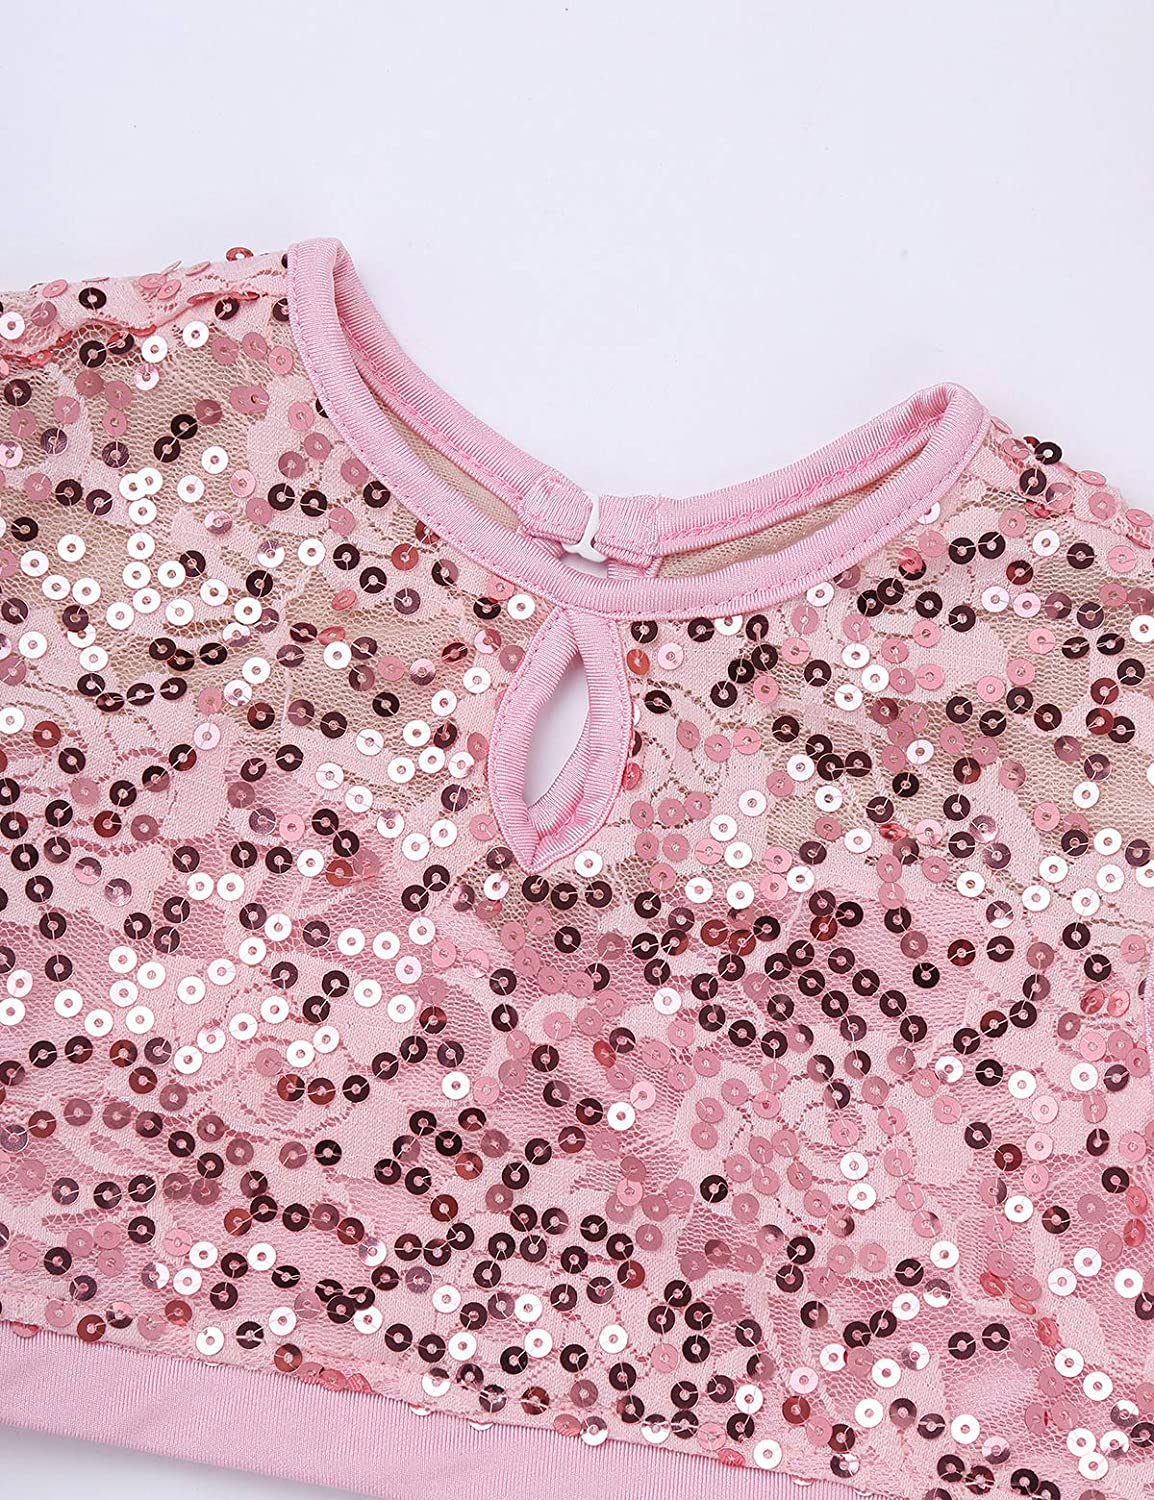 YOOJIA Junior Girls Sequined Lyrical Ballet Dance Bra Crop Tops with Chiffon Skirt Modern Dance Dress Outfit Costume